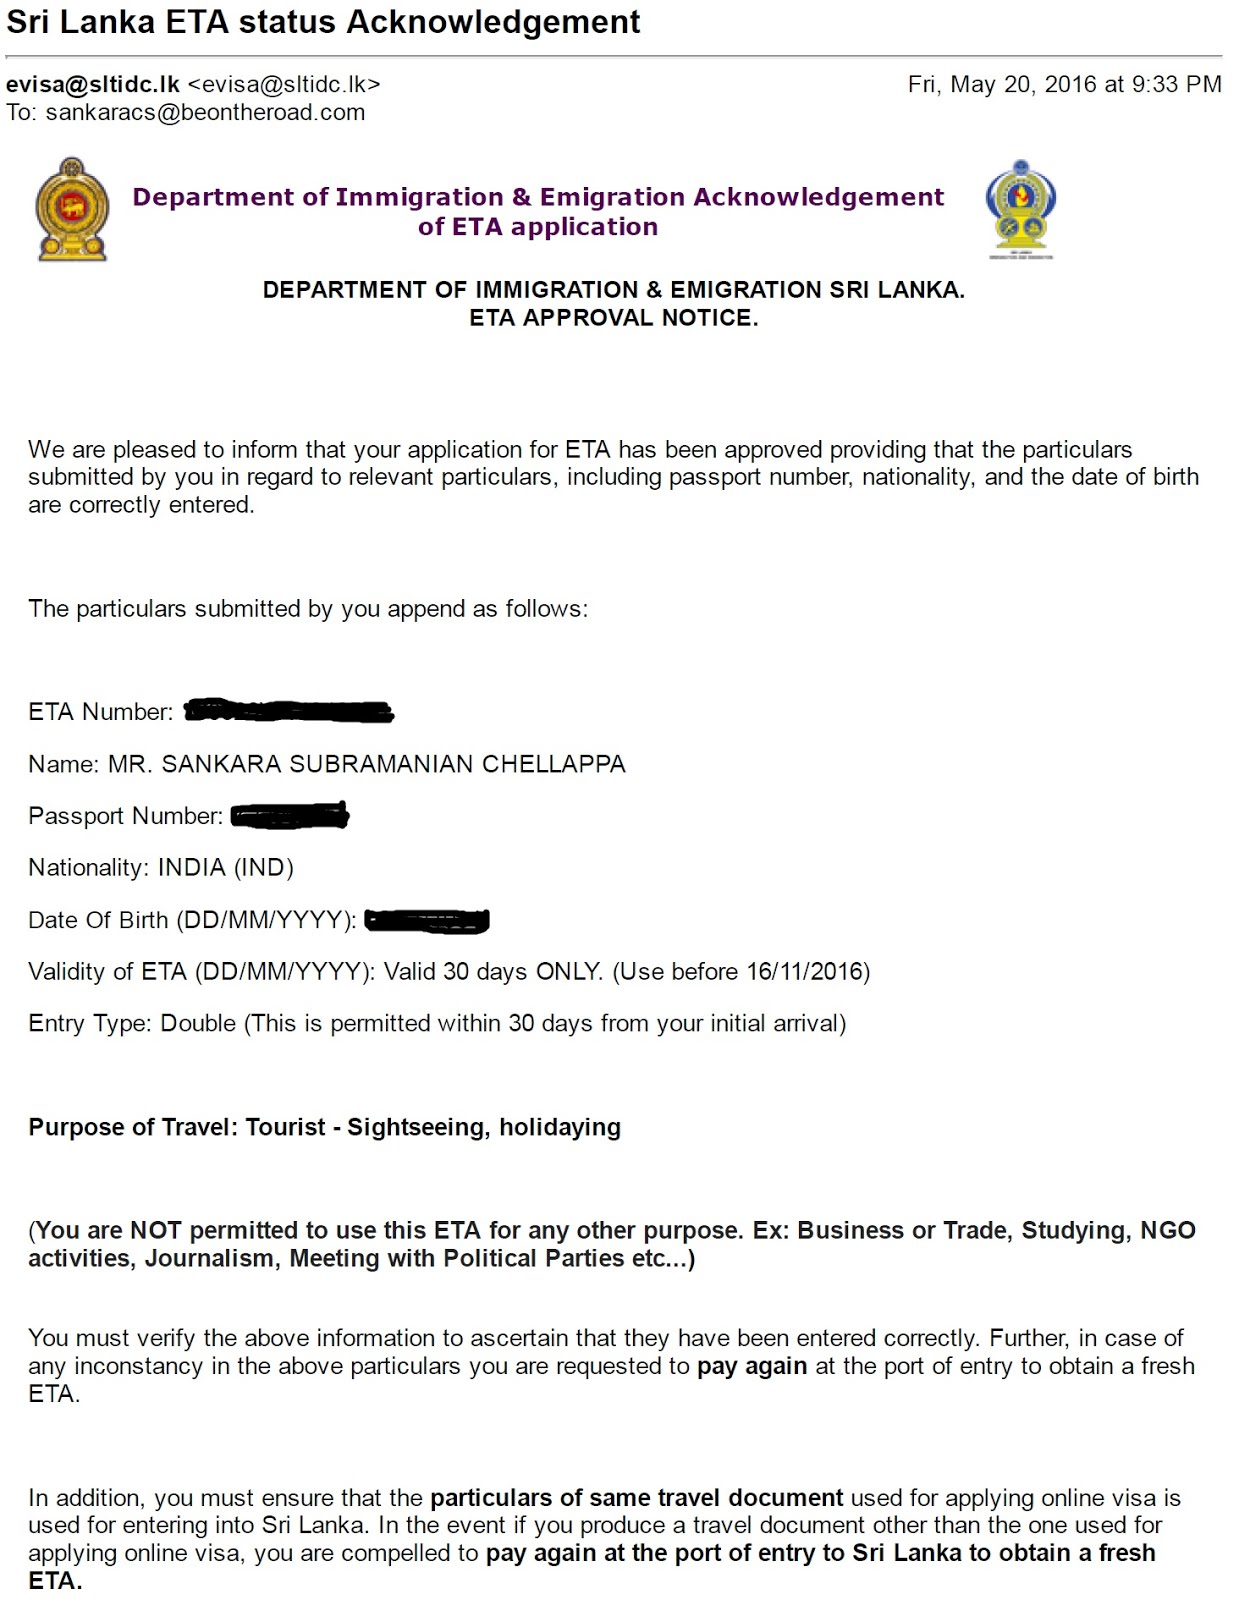 Sri Lanka ETA e-visa for Indians